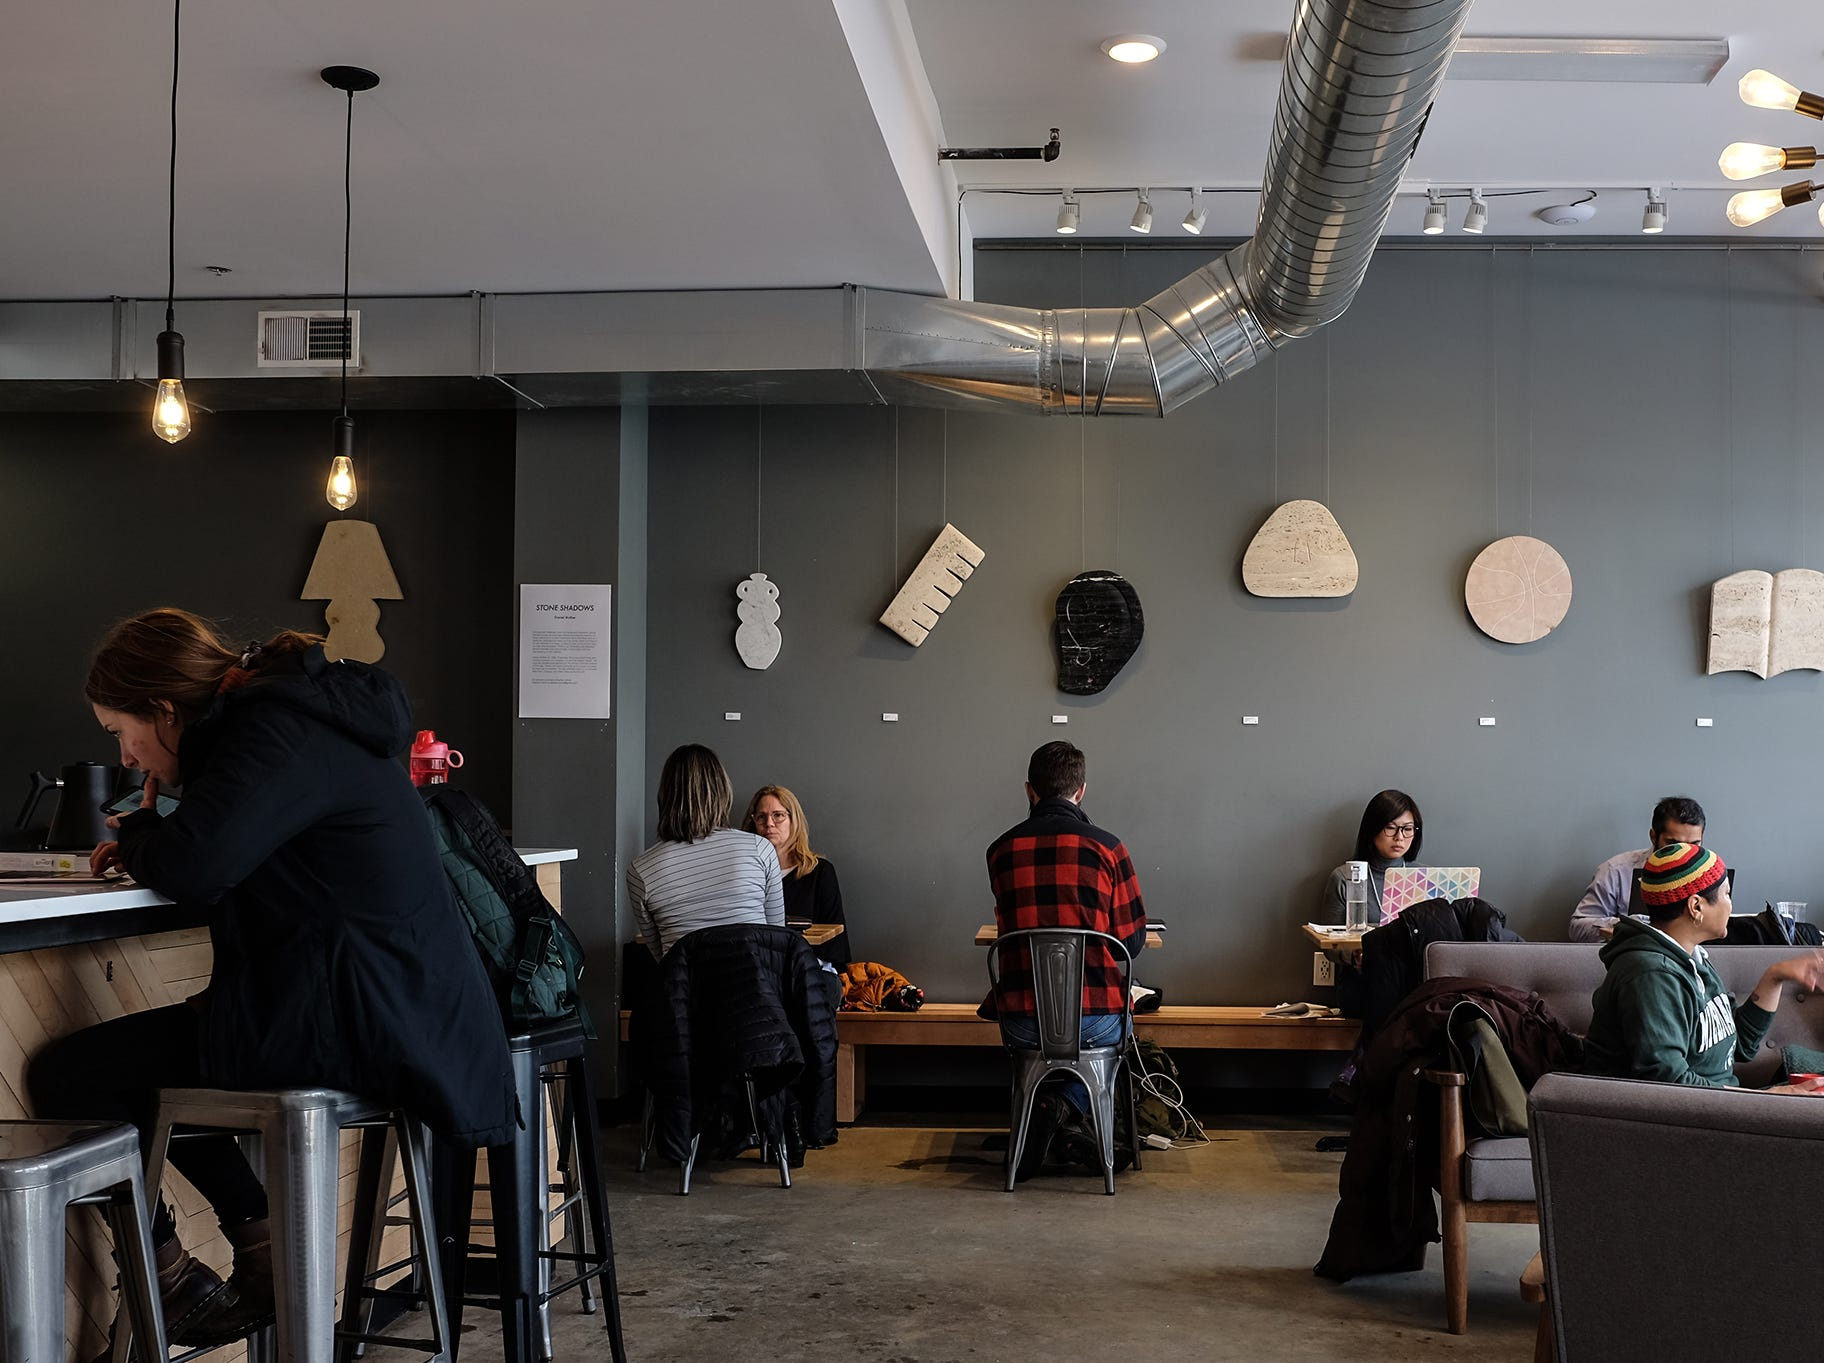 People relax, work, and have conversations at Strange Matter Coffee on Michigan Avenue.